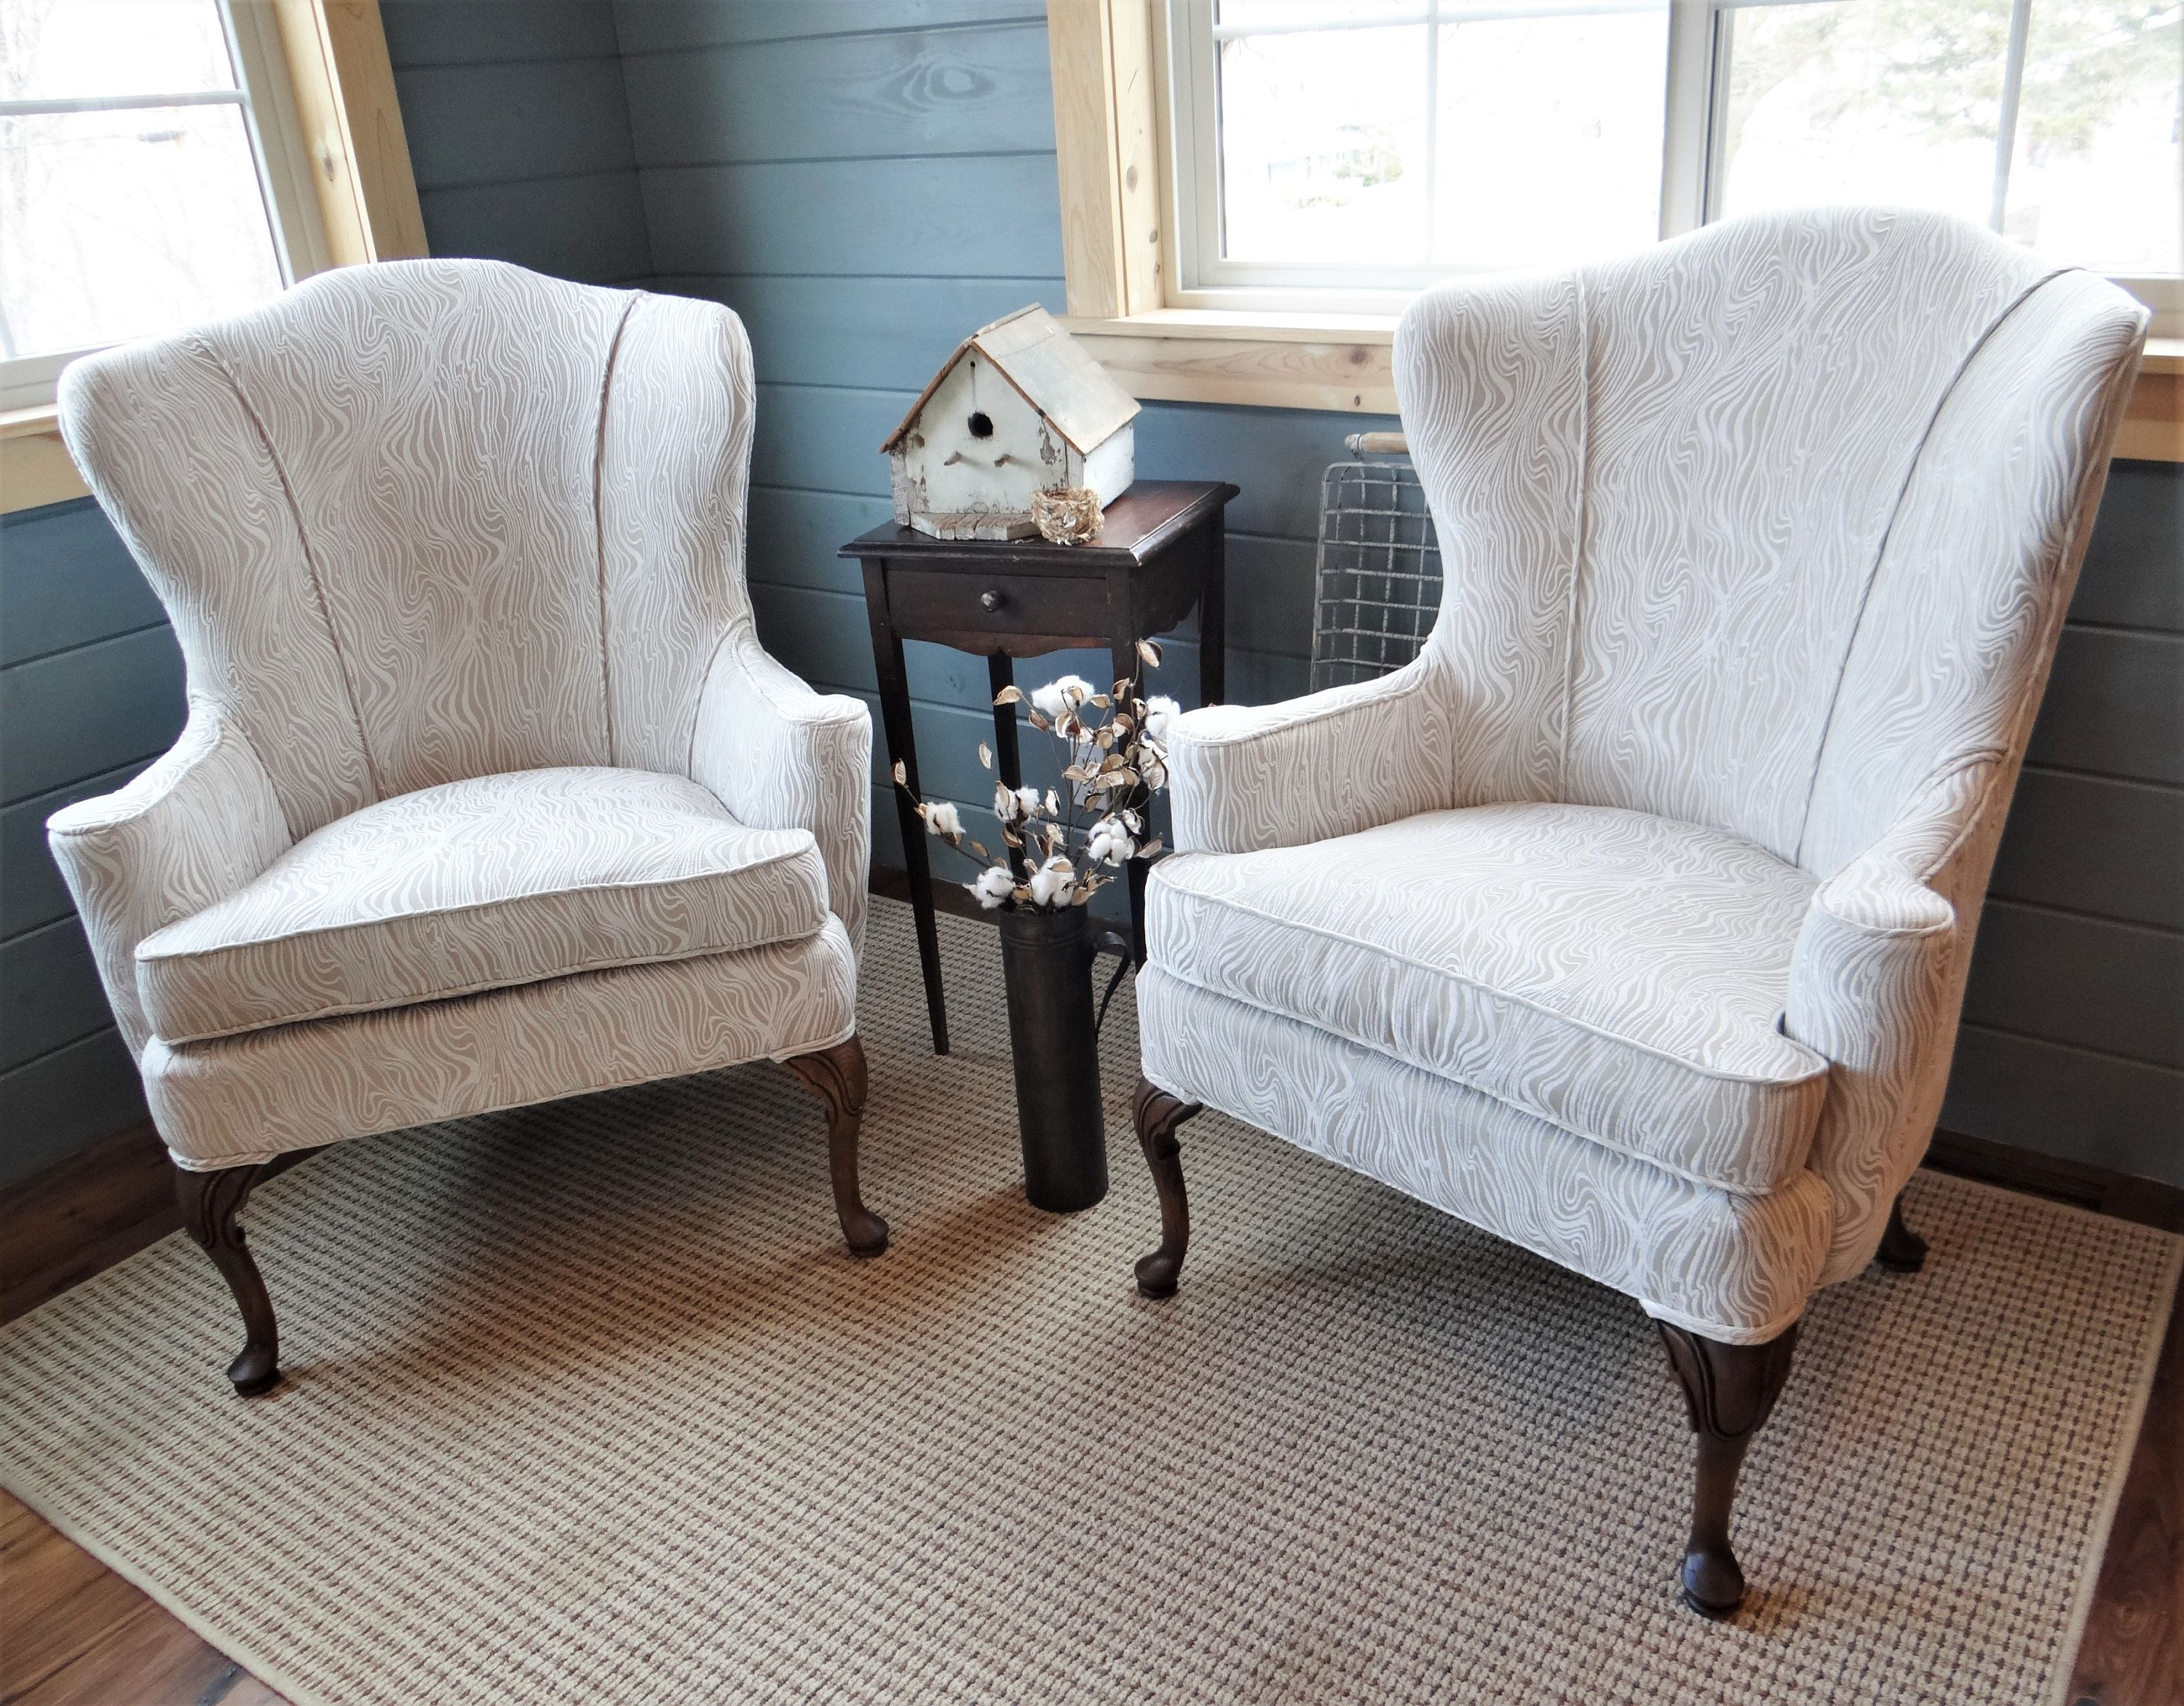 Pair Of Matching Tall Vintage Swoop Wingback Accent Chairs Restored In Birch Wood Grain Chenille Farmhouse Cou Wingback Accent Chair Earthy Chic Reupholstery